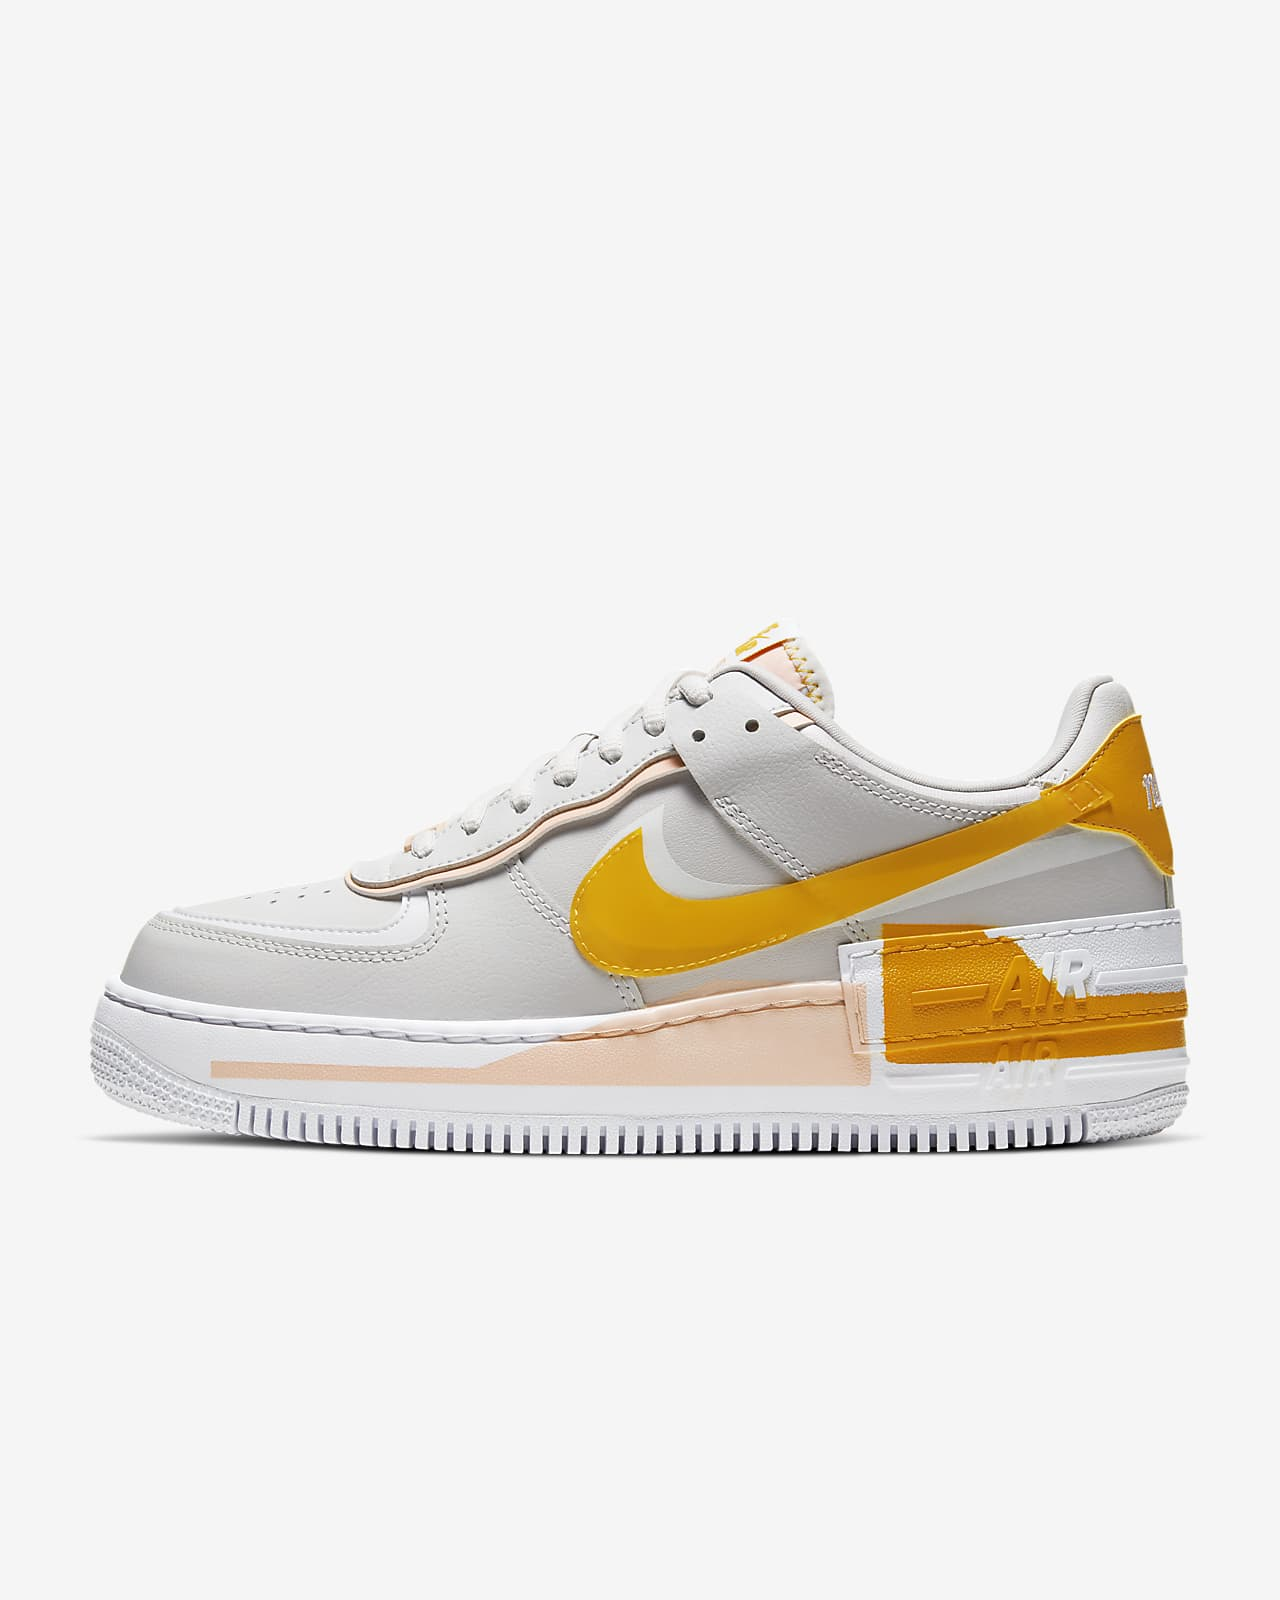 Nike Air Force 1 Shadow Se Women S Shoe Nike Ph 7 990 ₽ 3 990 ₽. nike air force 1 shadow se women s shoe